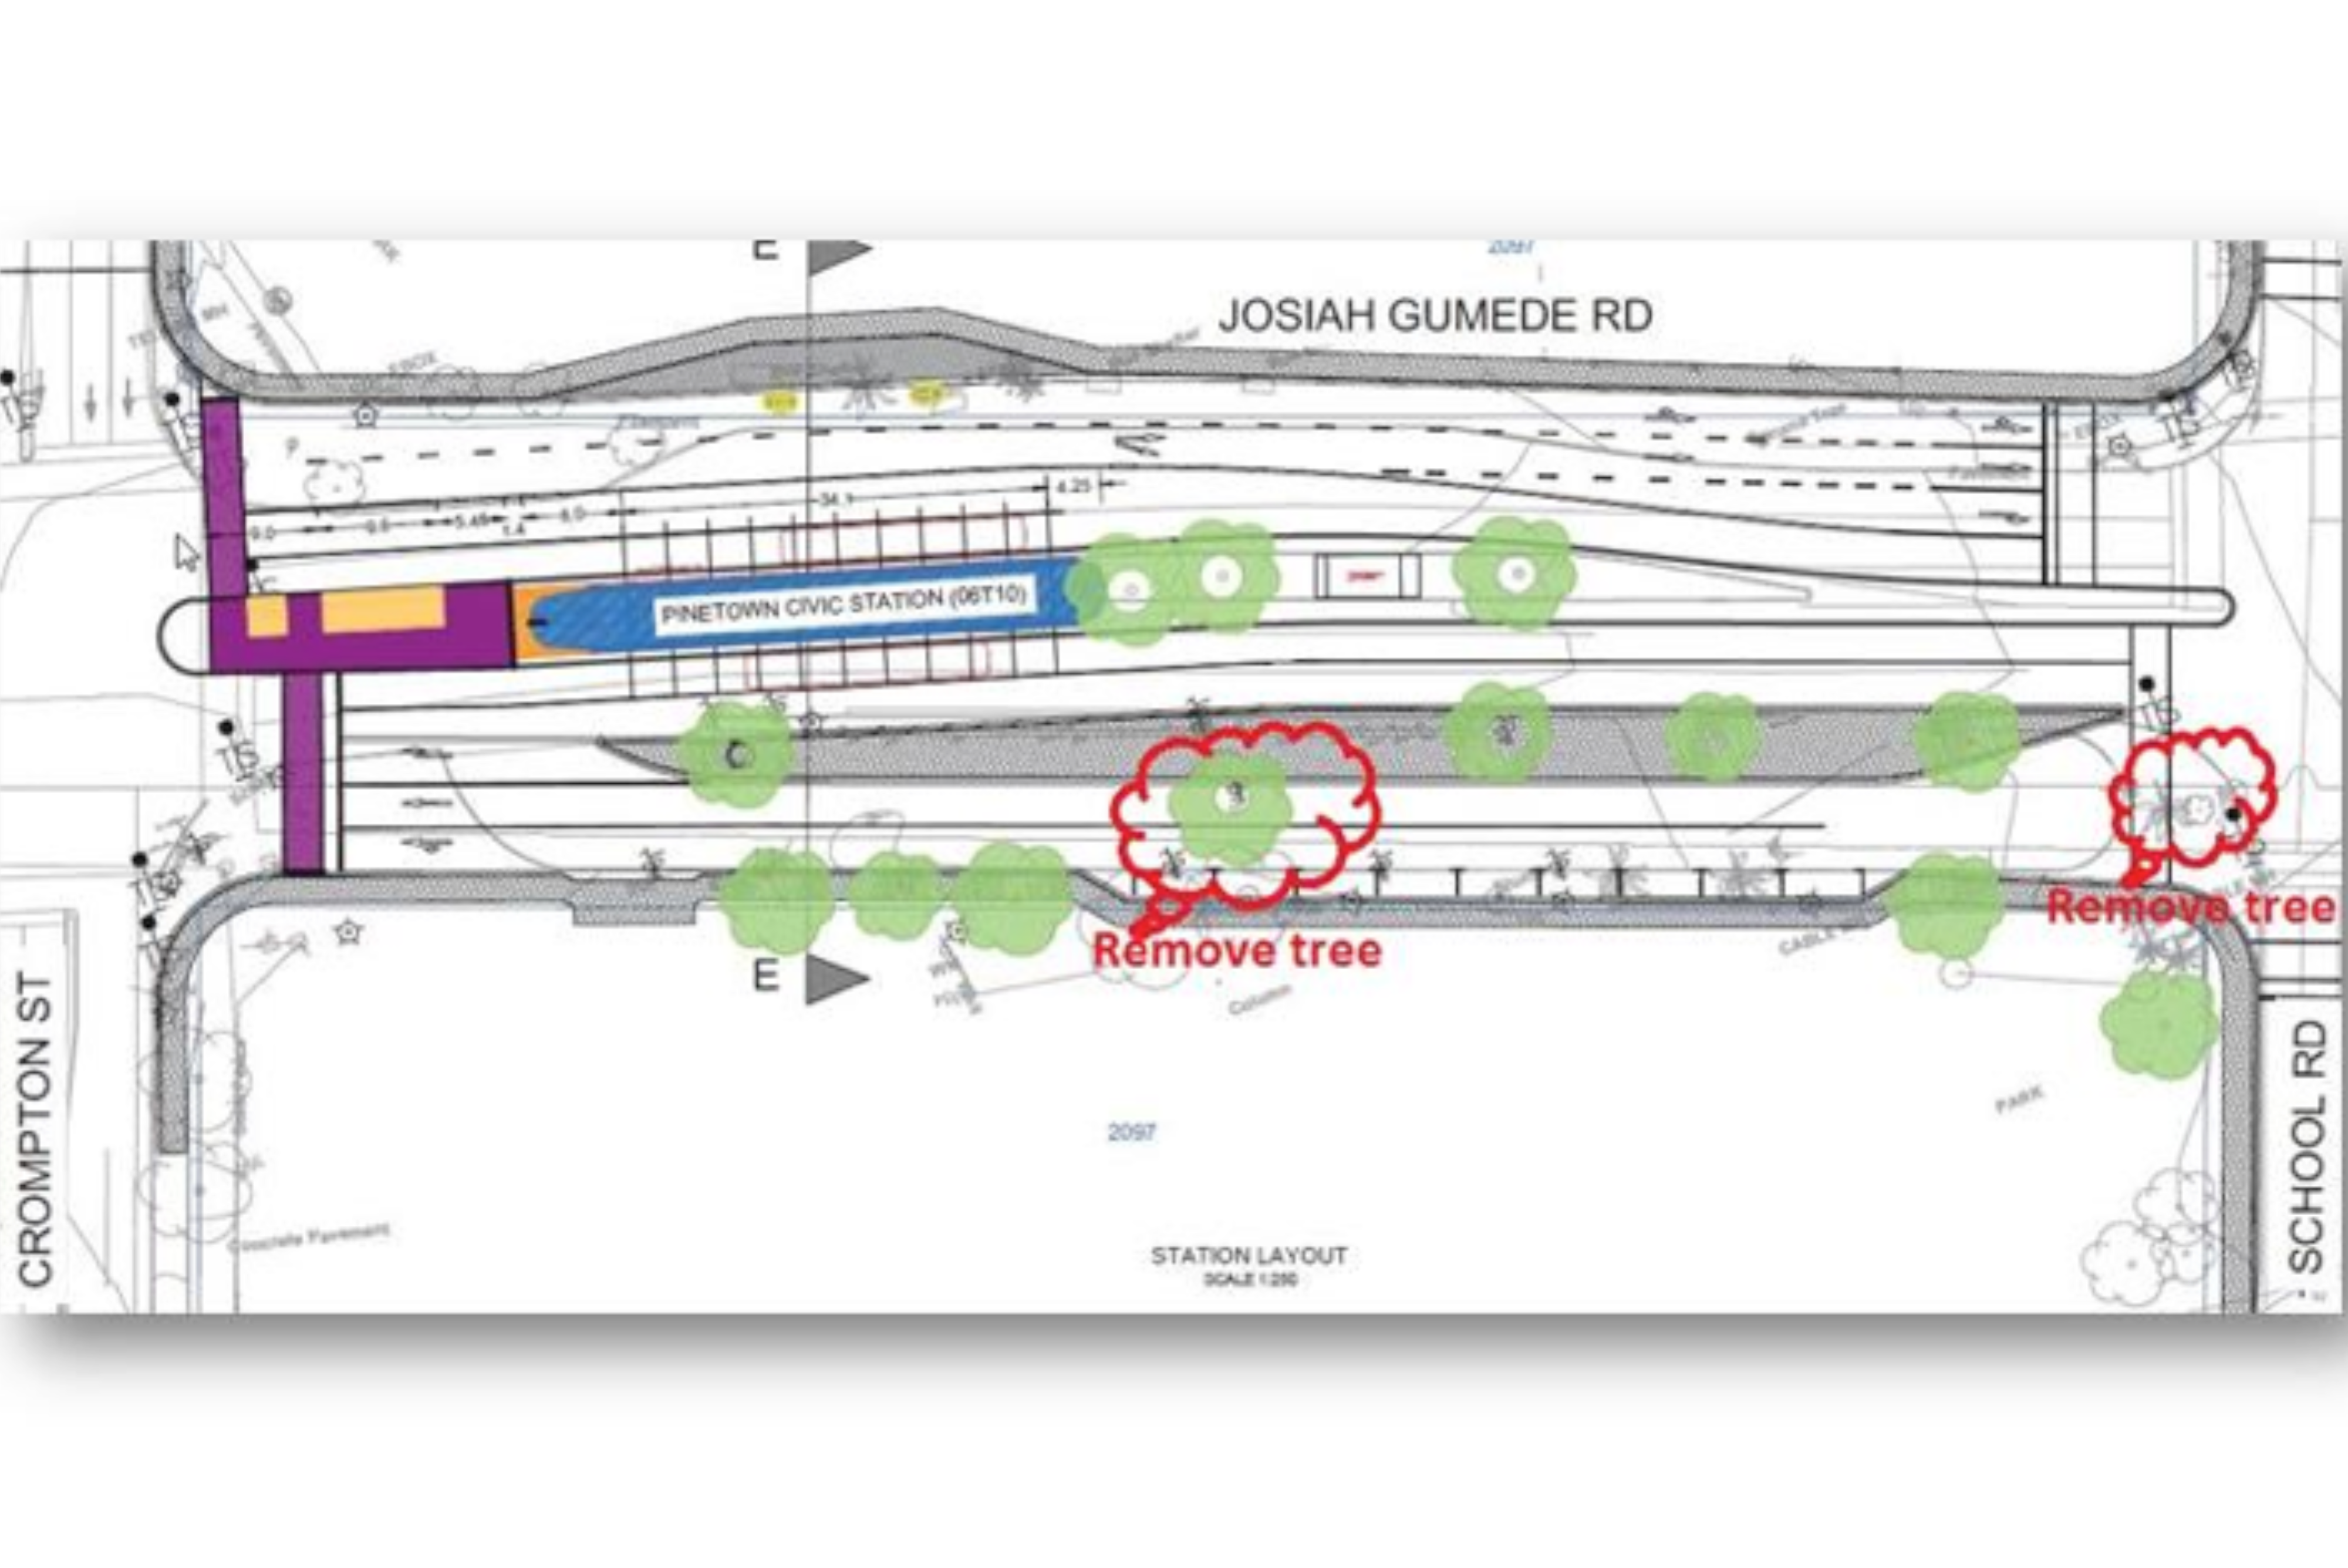 This image is a map of the new station design that accommodates the historical trees in the area.